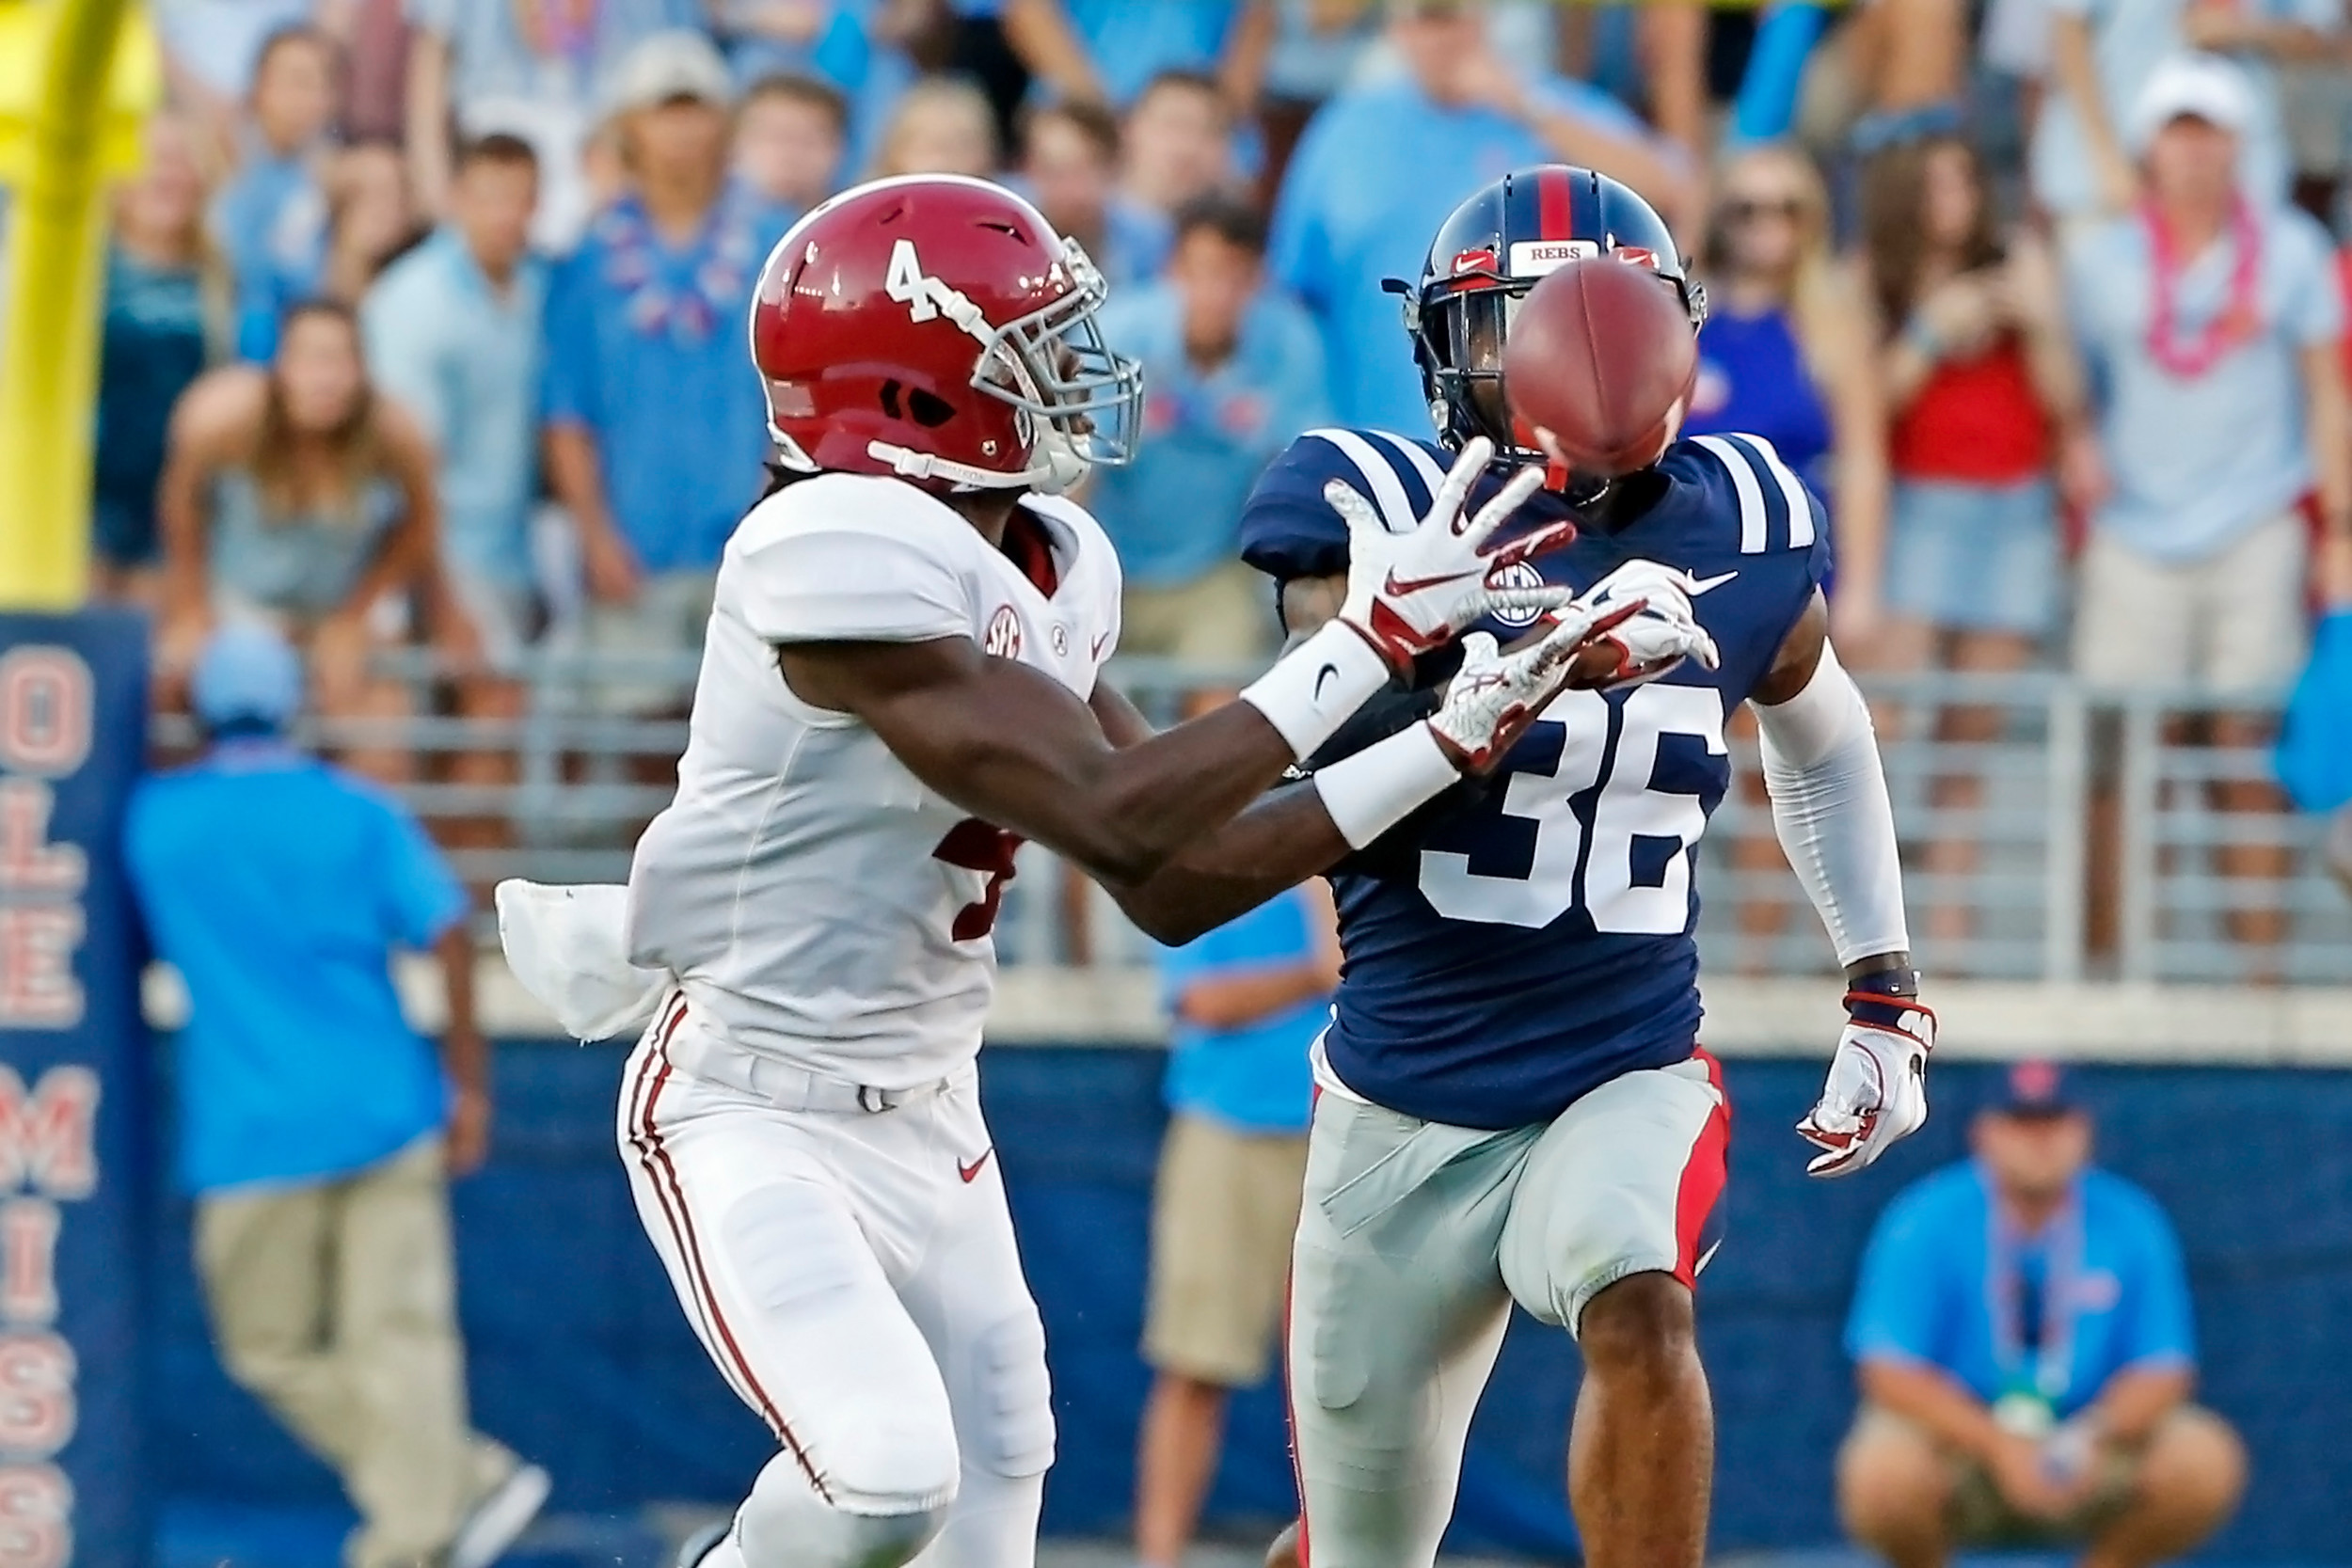 Alabama Crimson Tide wide receiver Jerry Jeudy (4) hauls in a pass during the game between the University of Alabama and Ole Miss at Vaught-Hemingway Stadium. Jason Clark / Daily Mountain Eagle